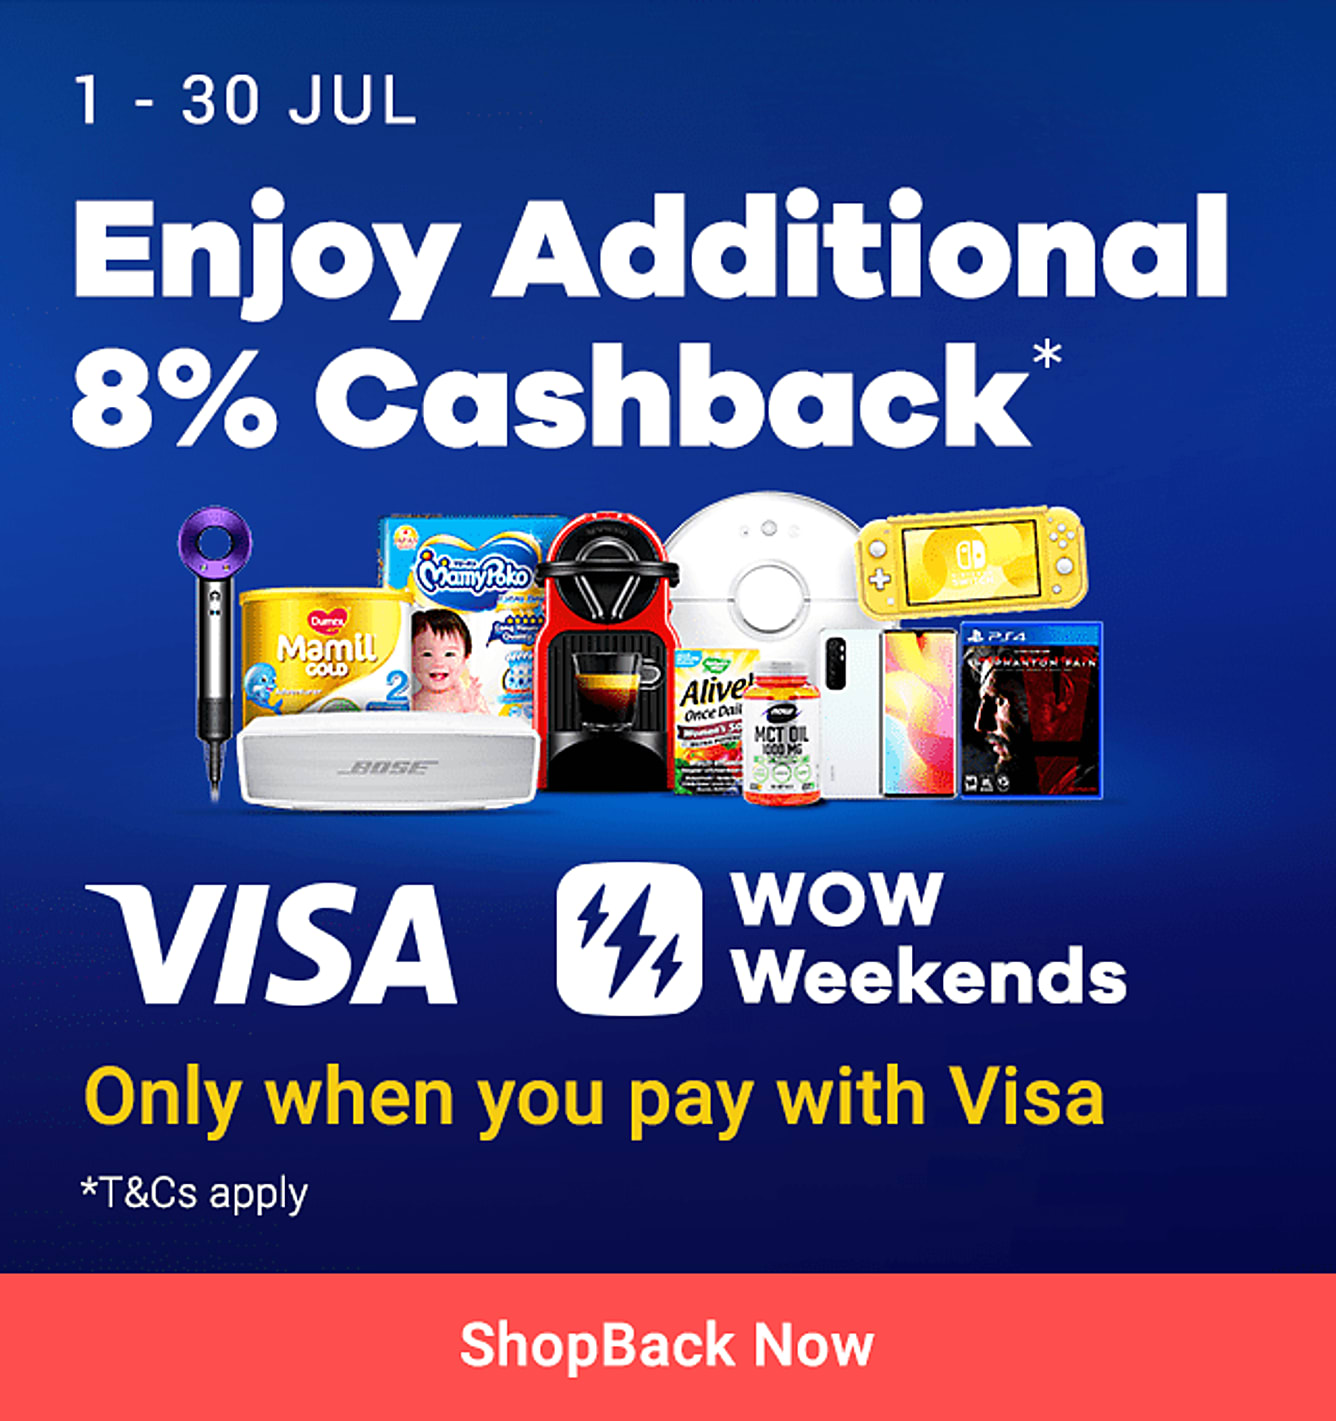 visa wow weekend